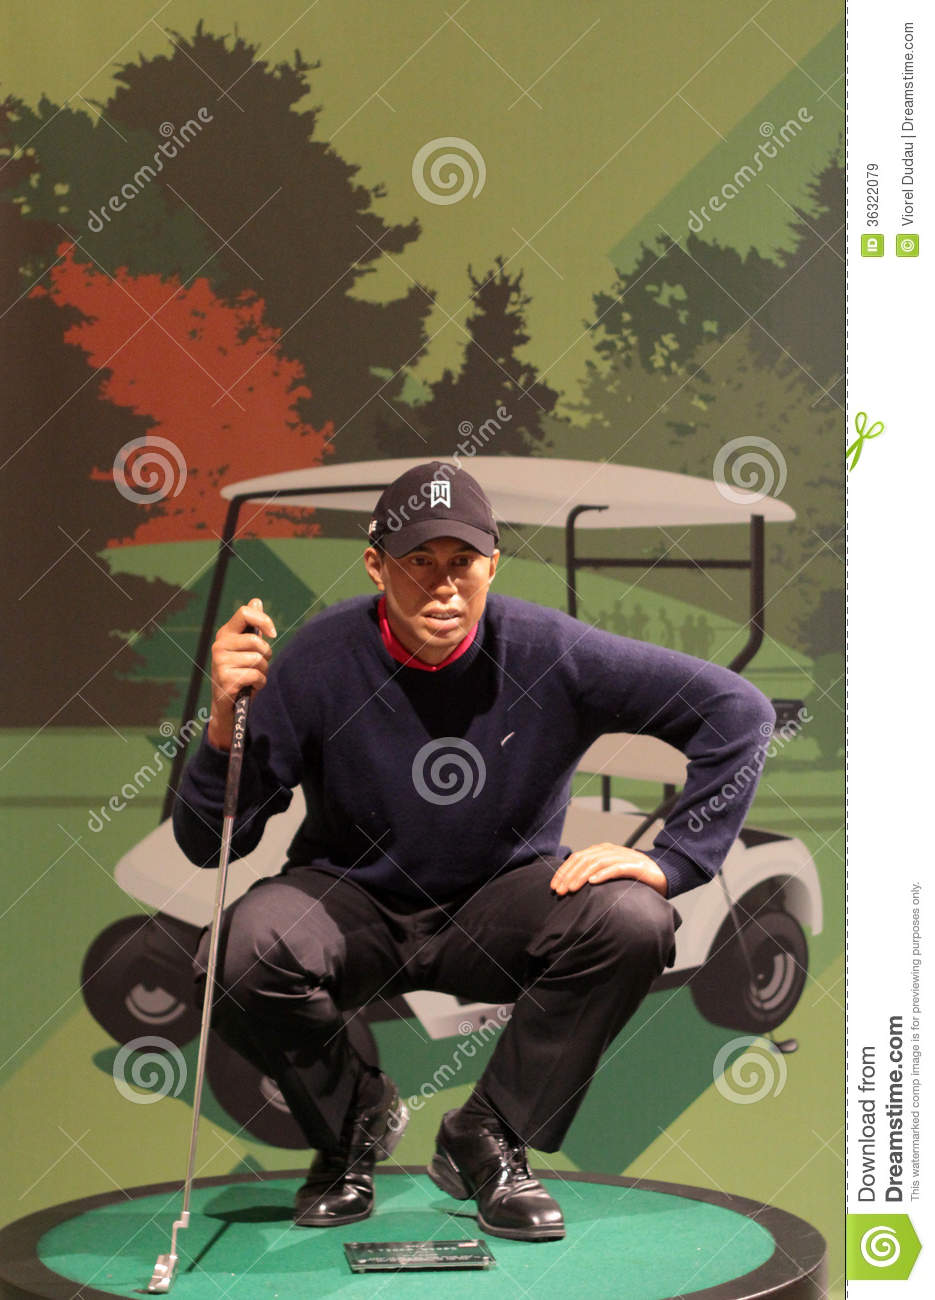 Tiger Woods At Miniature Golf Course Cartoon Vector ...